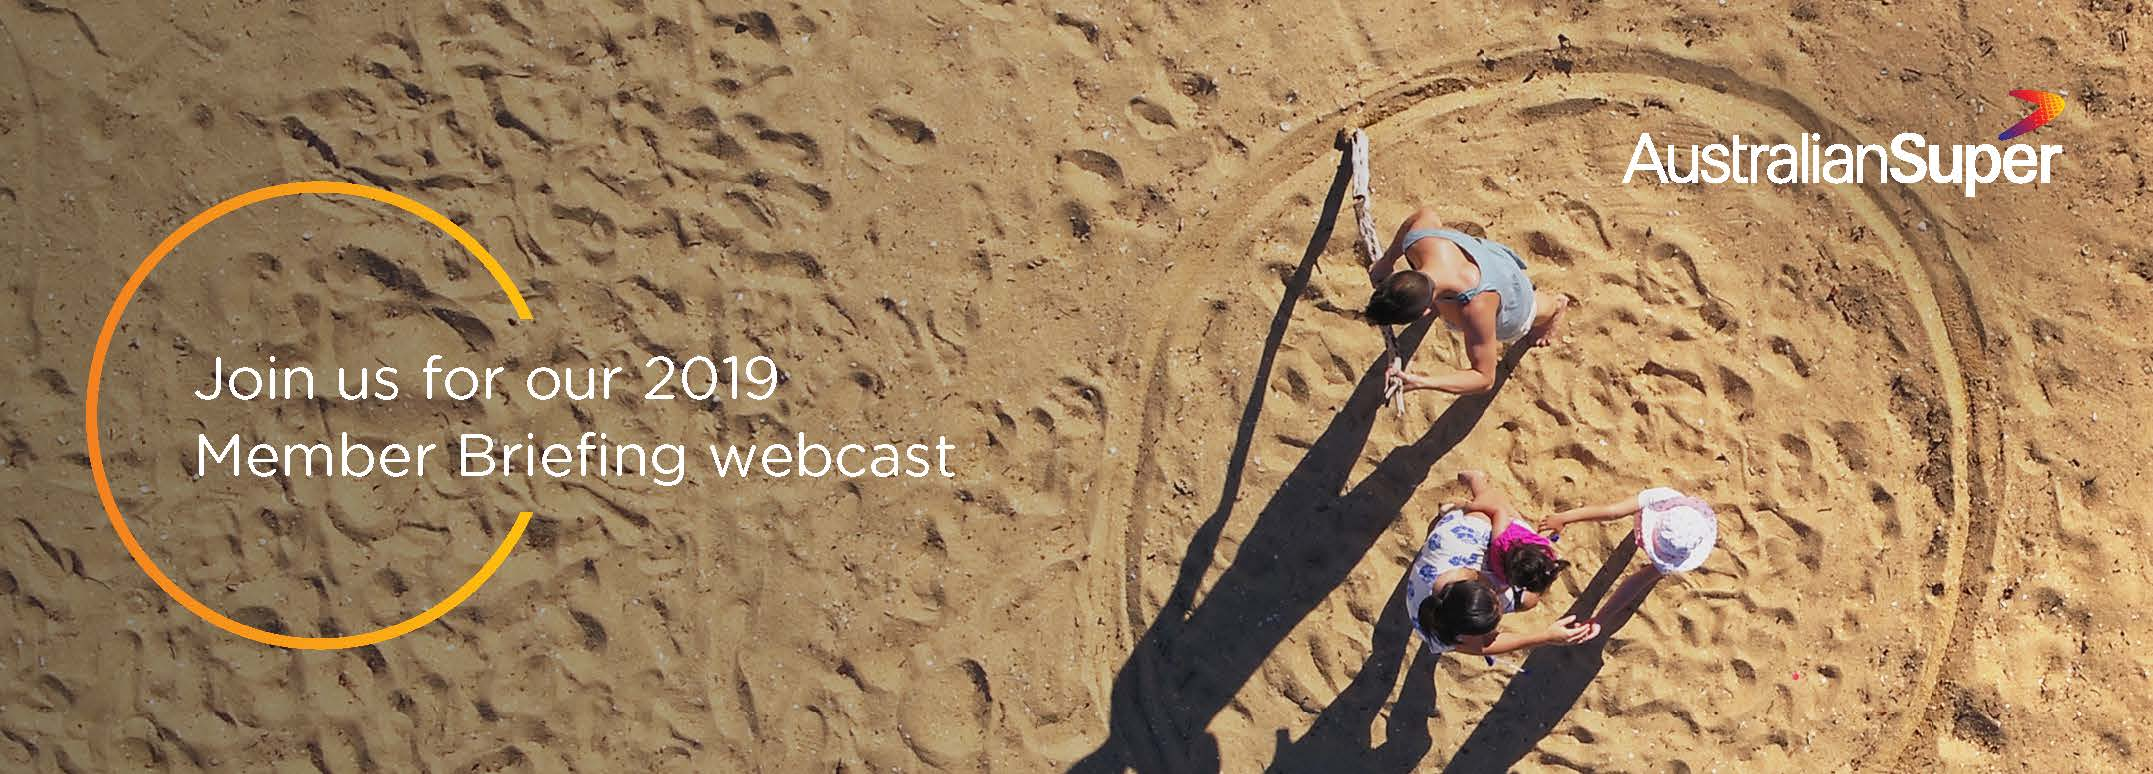 AustralianSuper 2019 Member Briefing - Webcast